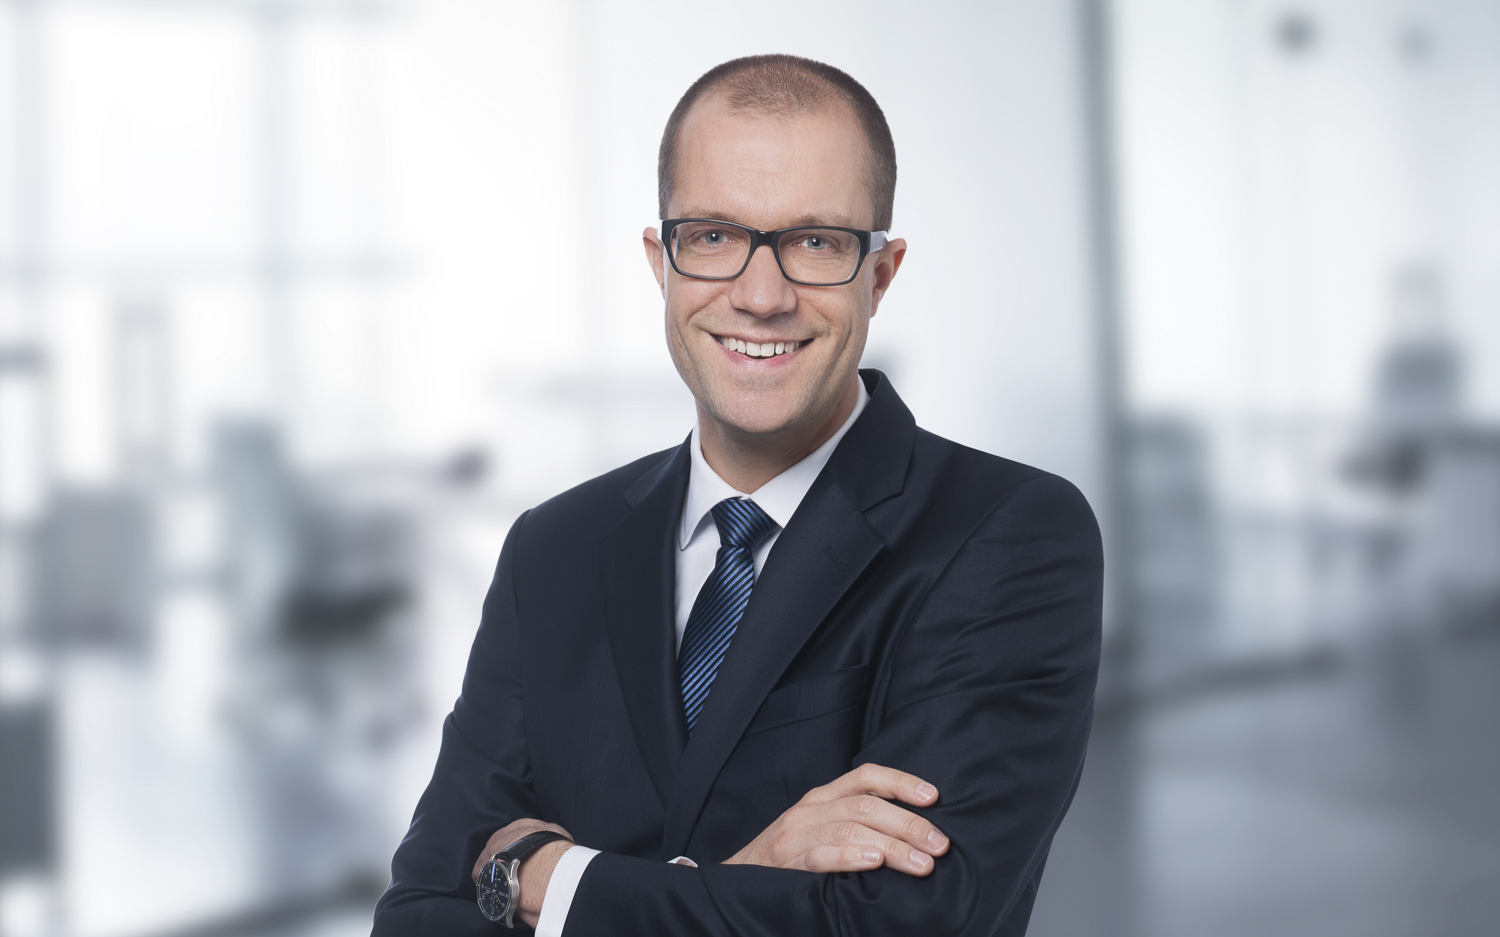 Manuel Dubler  Managing Partner MSc Computer Science  Having started his consulting career in 2005, Manuel led and delivered dozens of projects in Switzerland, UK and Asia. While his banking expertise covers many wealth management related topics, he is known for his conceptual skills and his ability to lead large teams through complex and demanding programs or to recover troubled projects in the role of a turnaround manager.